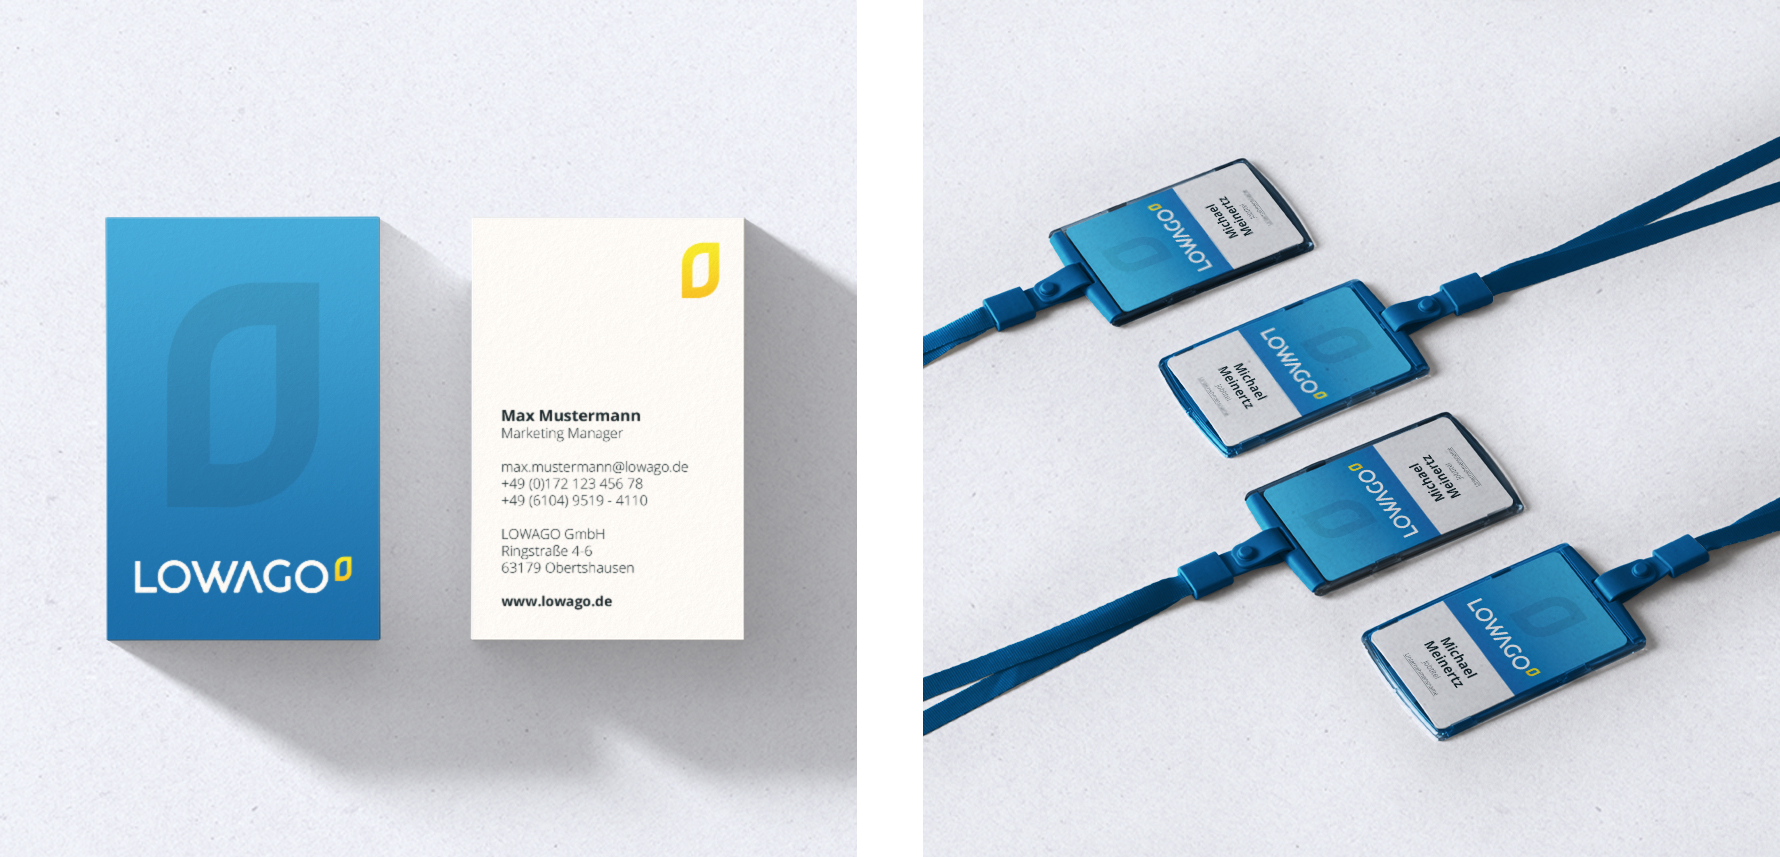 Hüfner Design | Referenz LOWAGO | Stationary